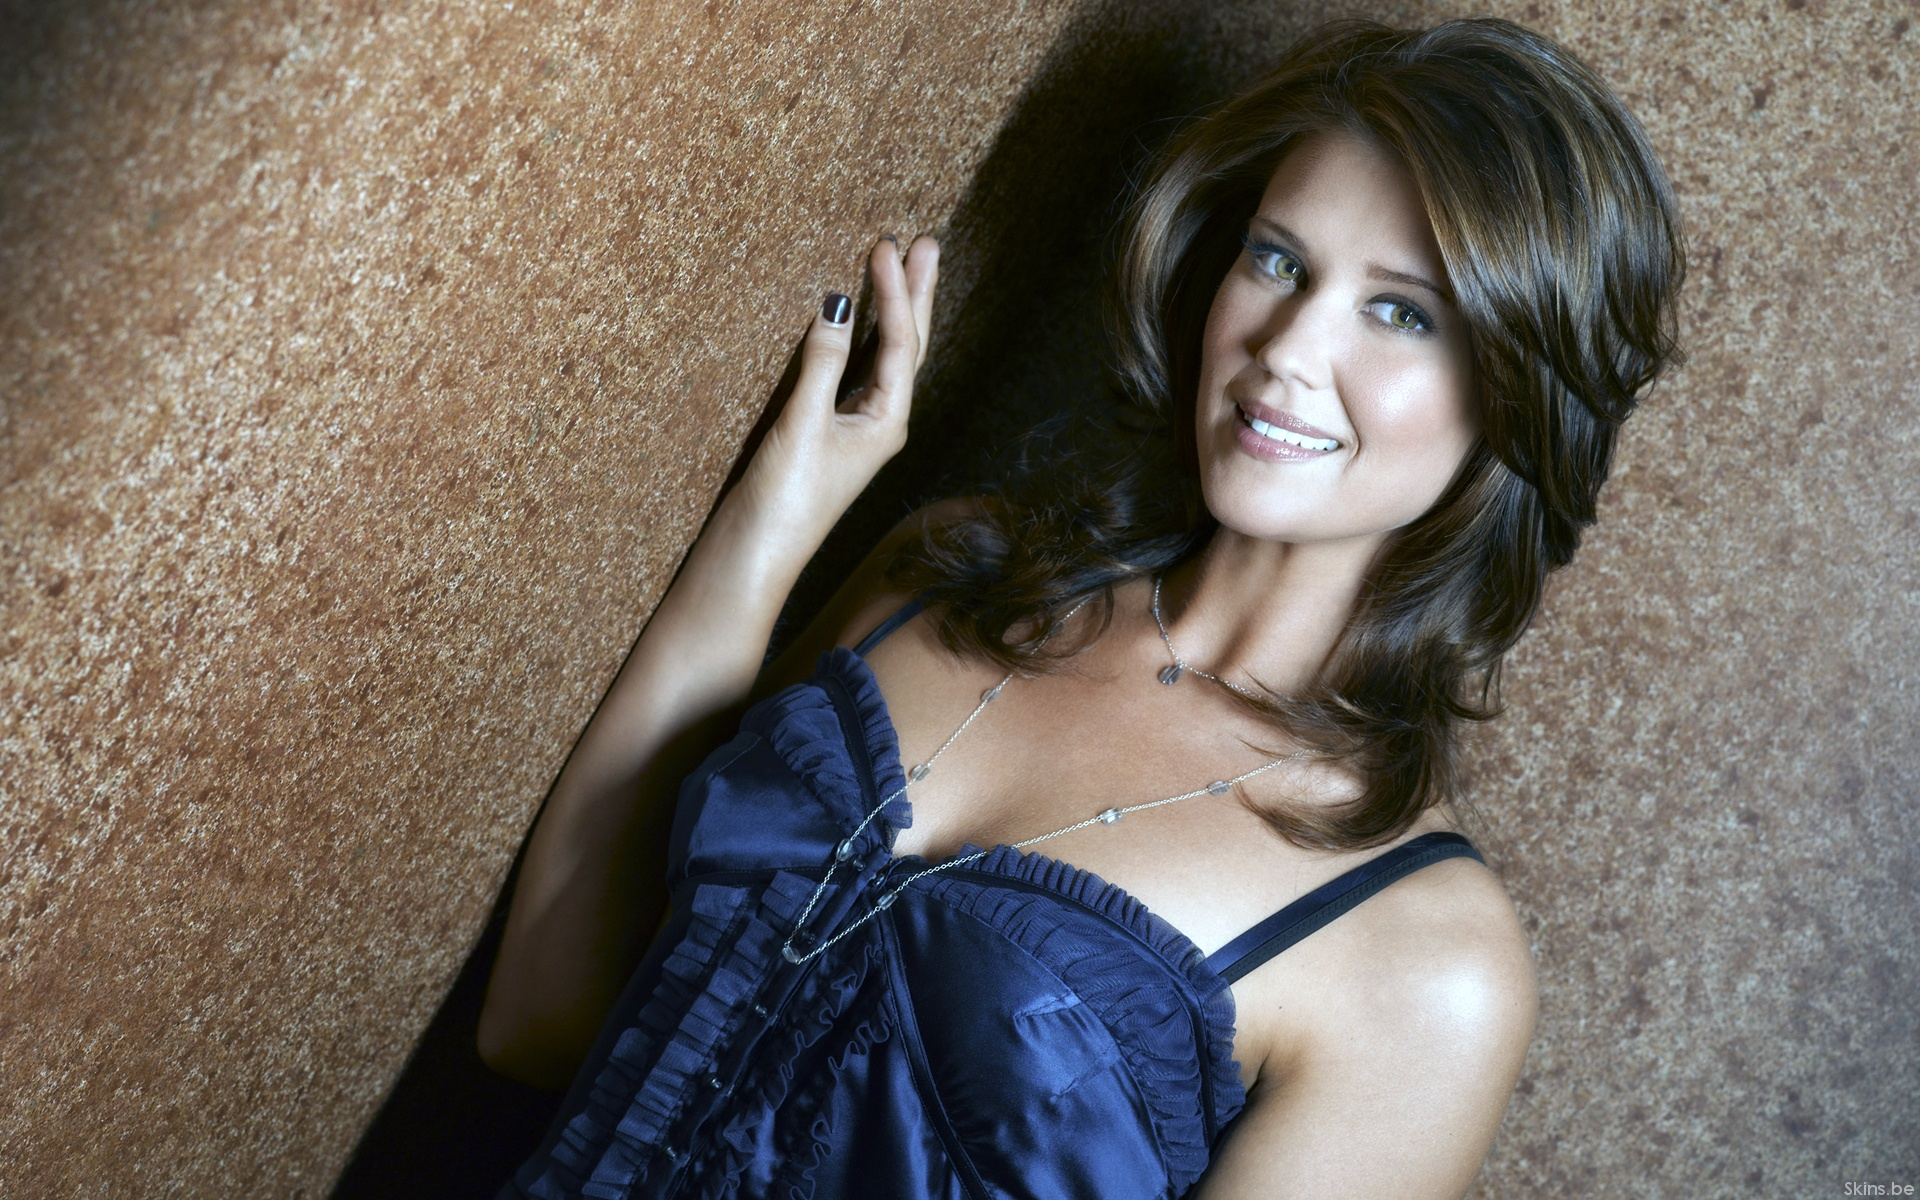 SARAH LANCASTER WALLPAPERS FREE Wallpapers Background images 1920x1200